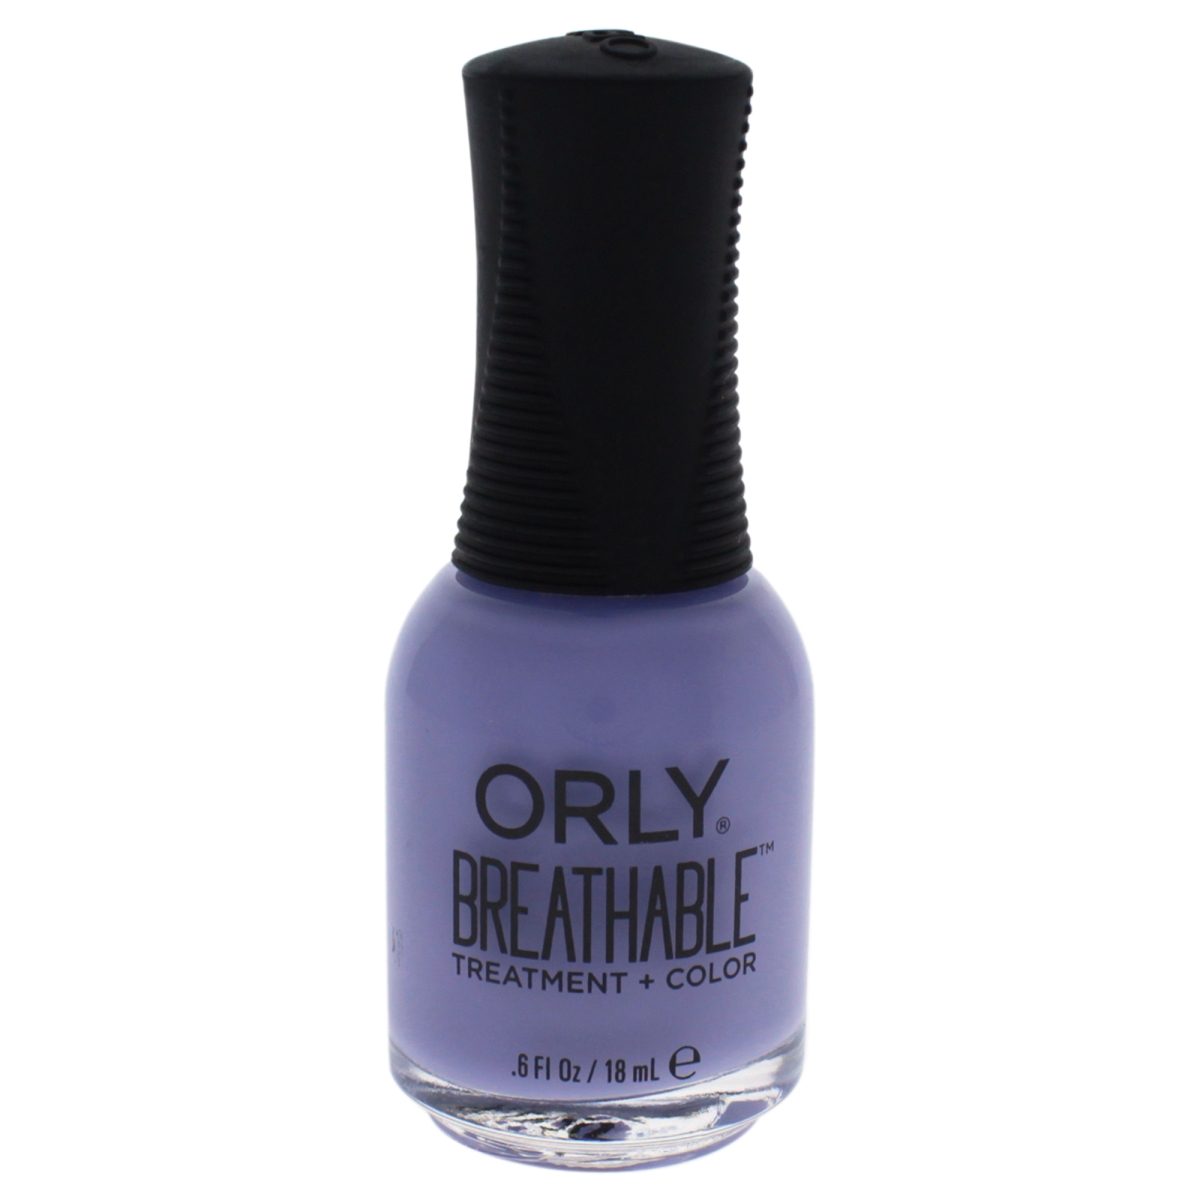 Orly W-C-12370 0.6 oz Breathable Treatment Plus Color No.20918 Just Breathe Nail Polish for Women